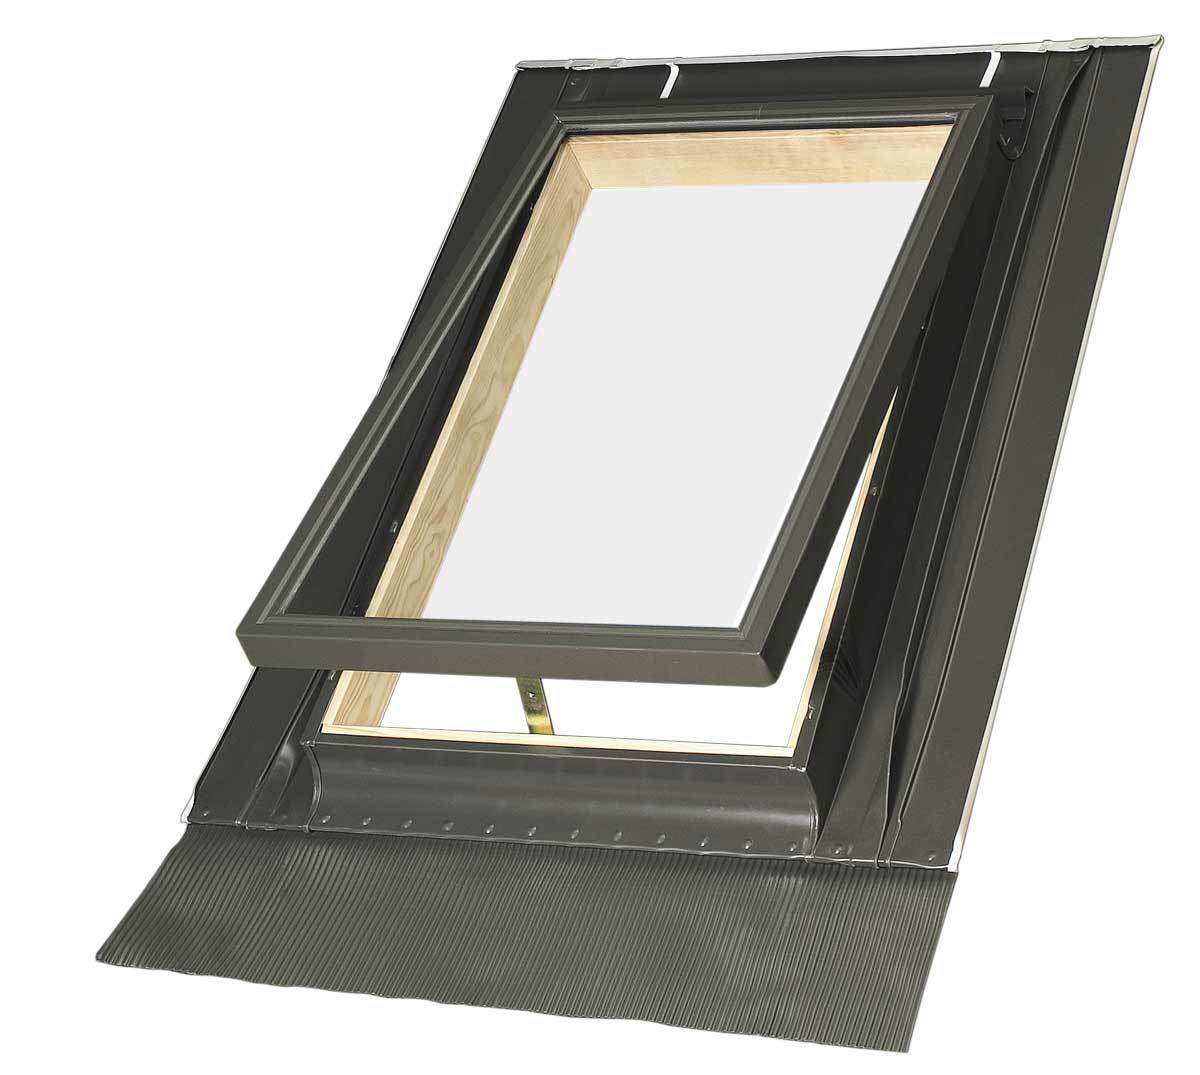 Optilook Roof Access Window 46x75.